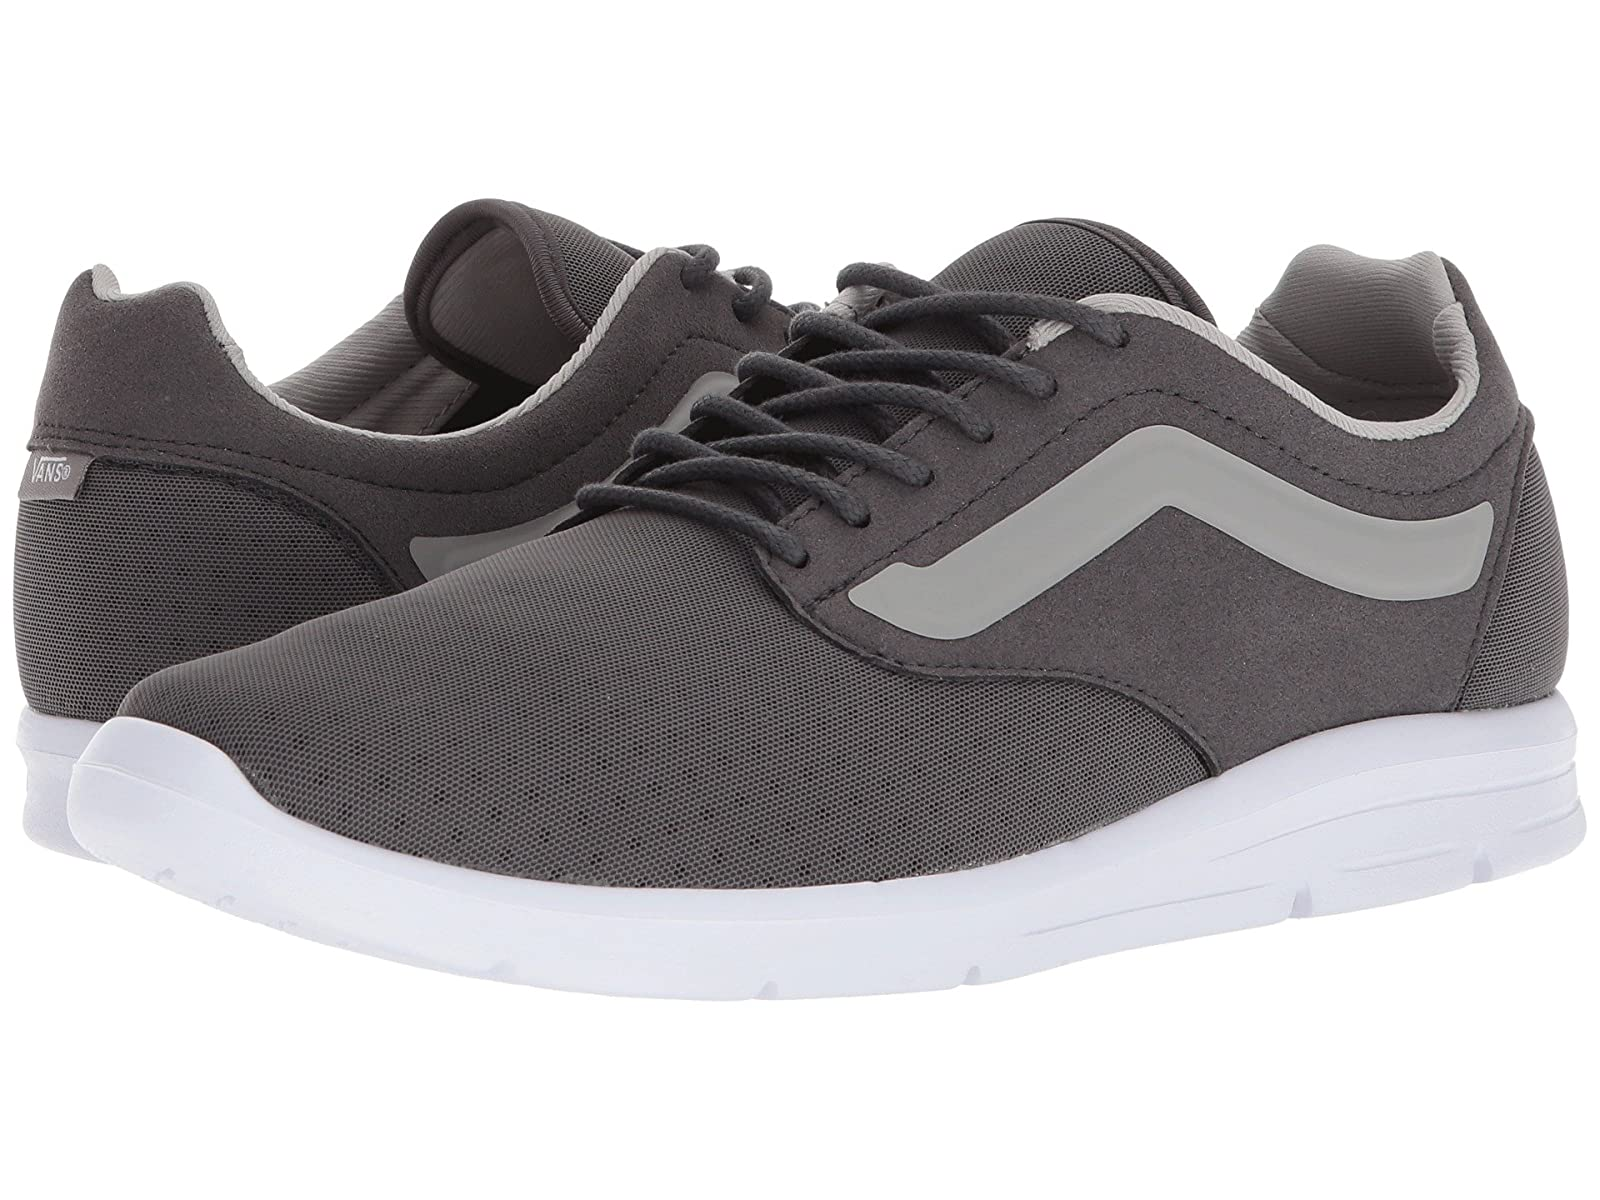 Vans ISO 1.5Atmospheric grades have affordable shoes